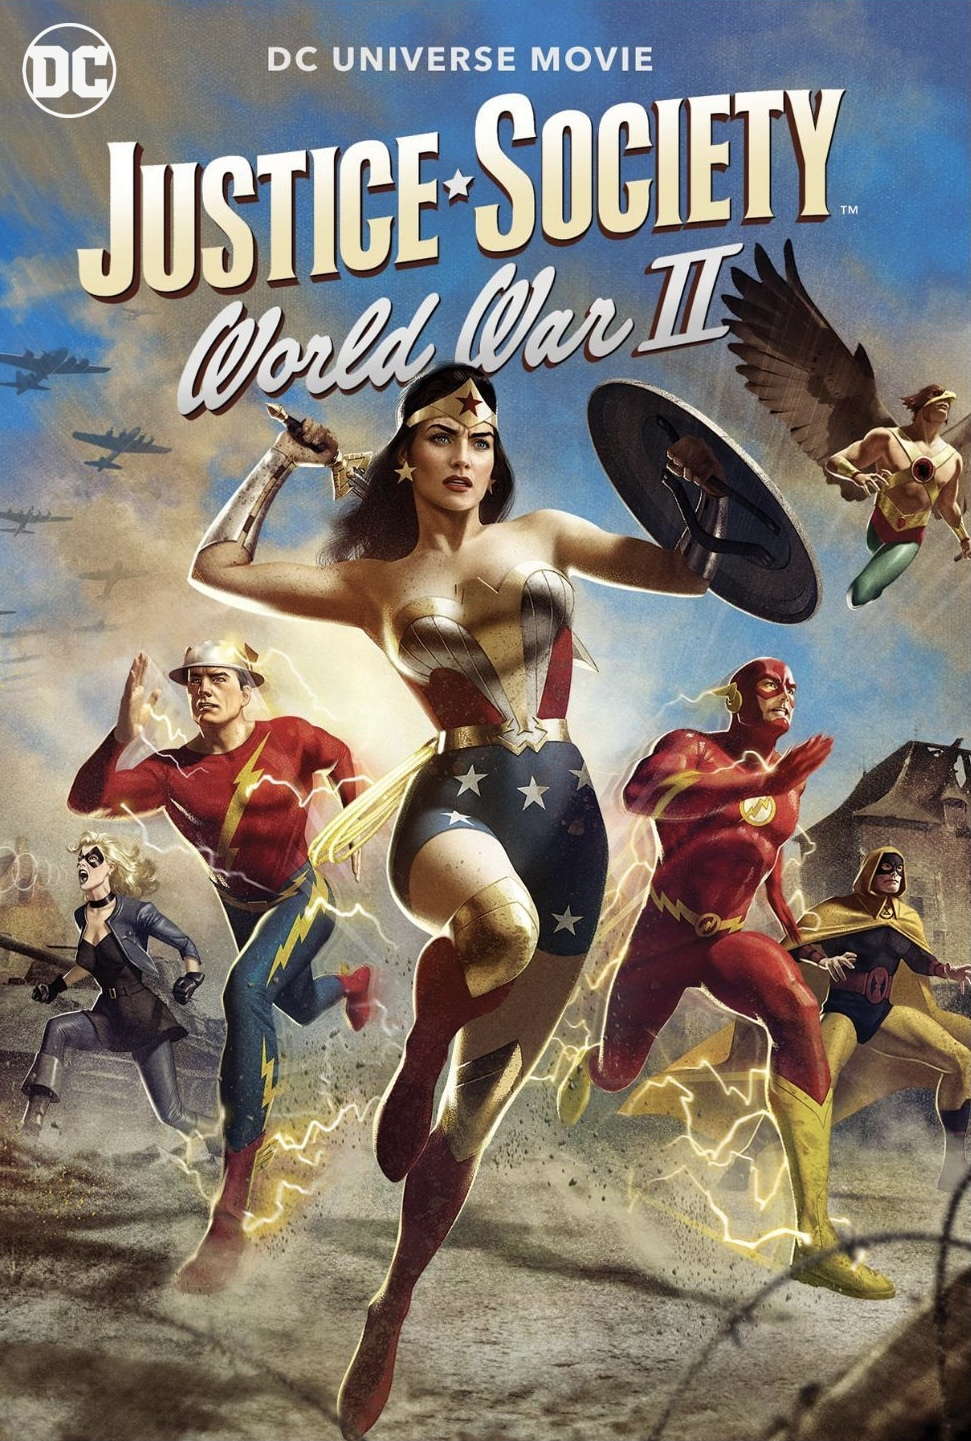 Justice Society World War II 2021 Dual Audio 720p HDRip [Hindi – English] Free Download